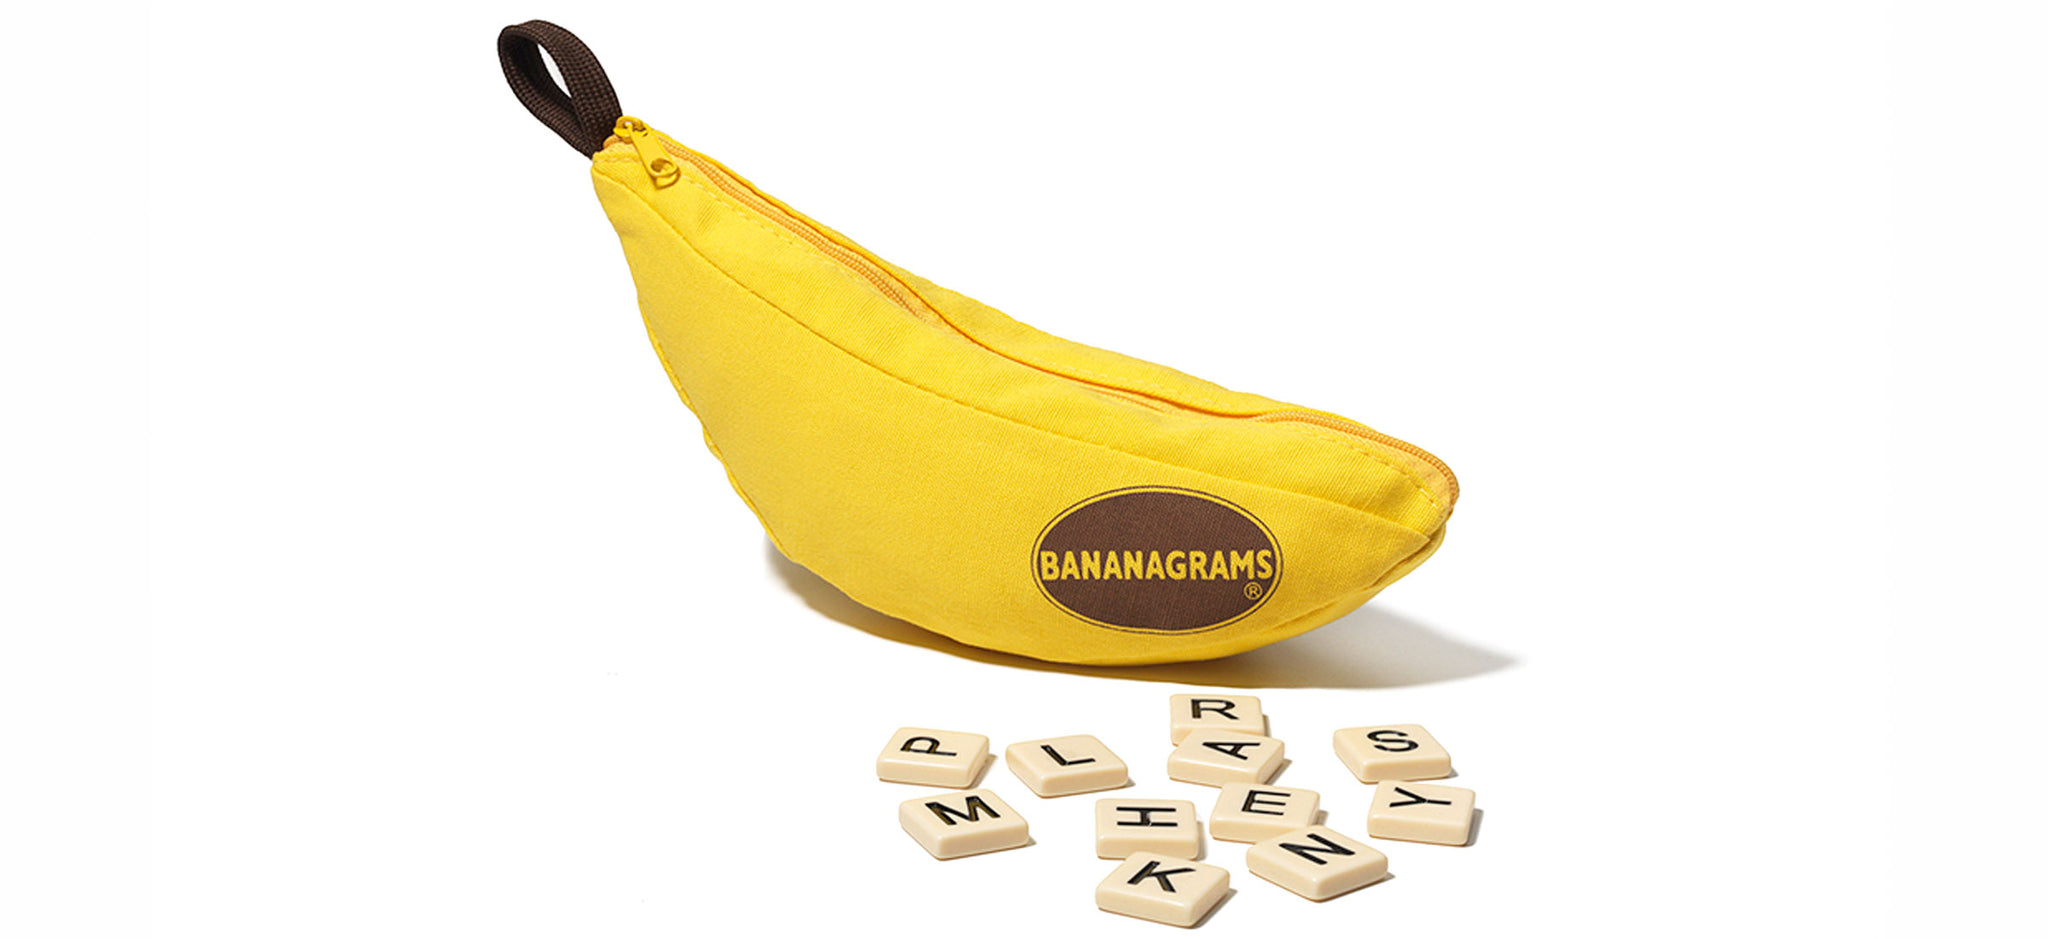 Province of Canada - Bananagrams